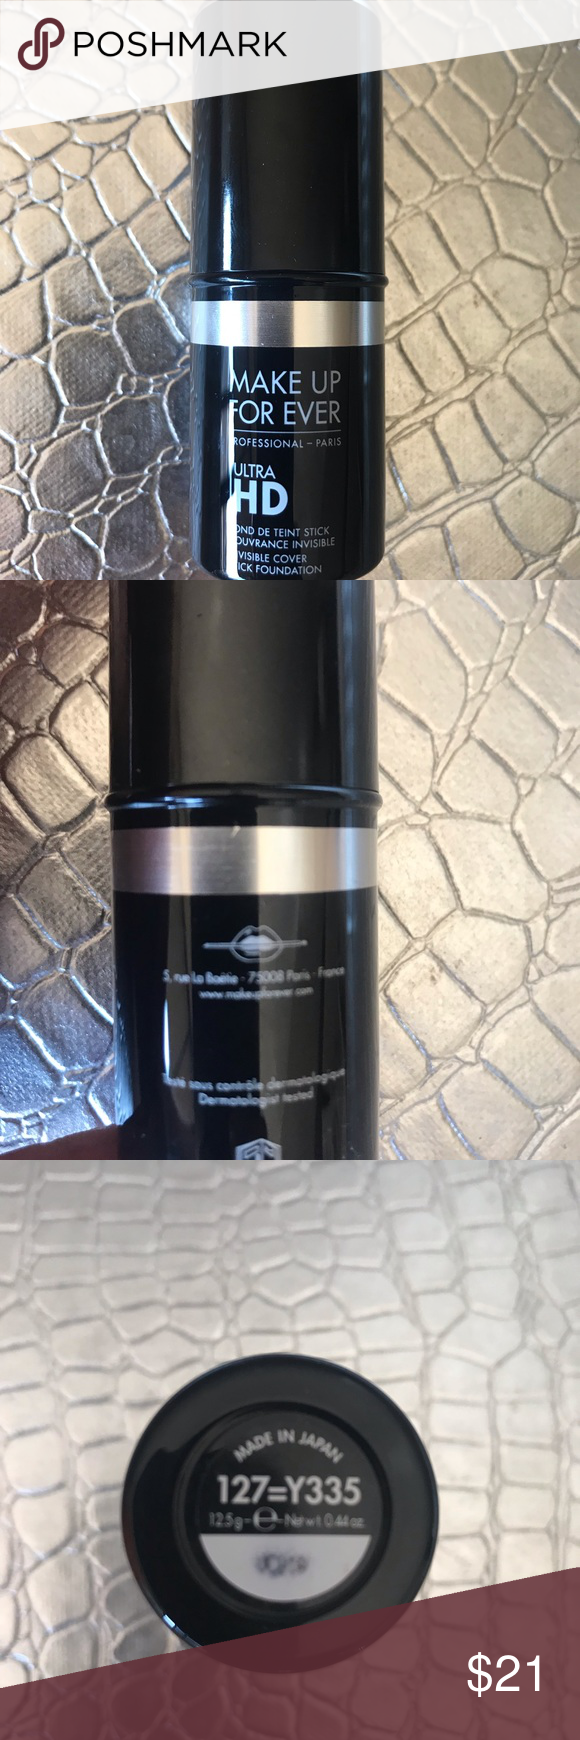 Makeup Forever ultra hd foundation Invisible coverage